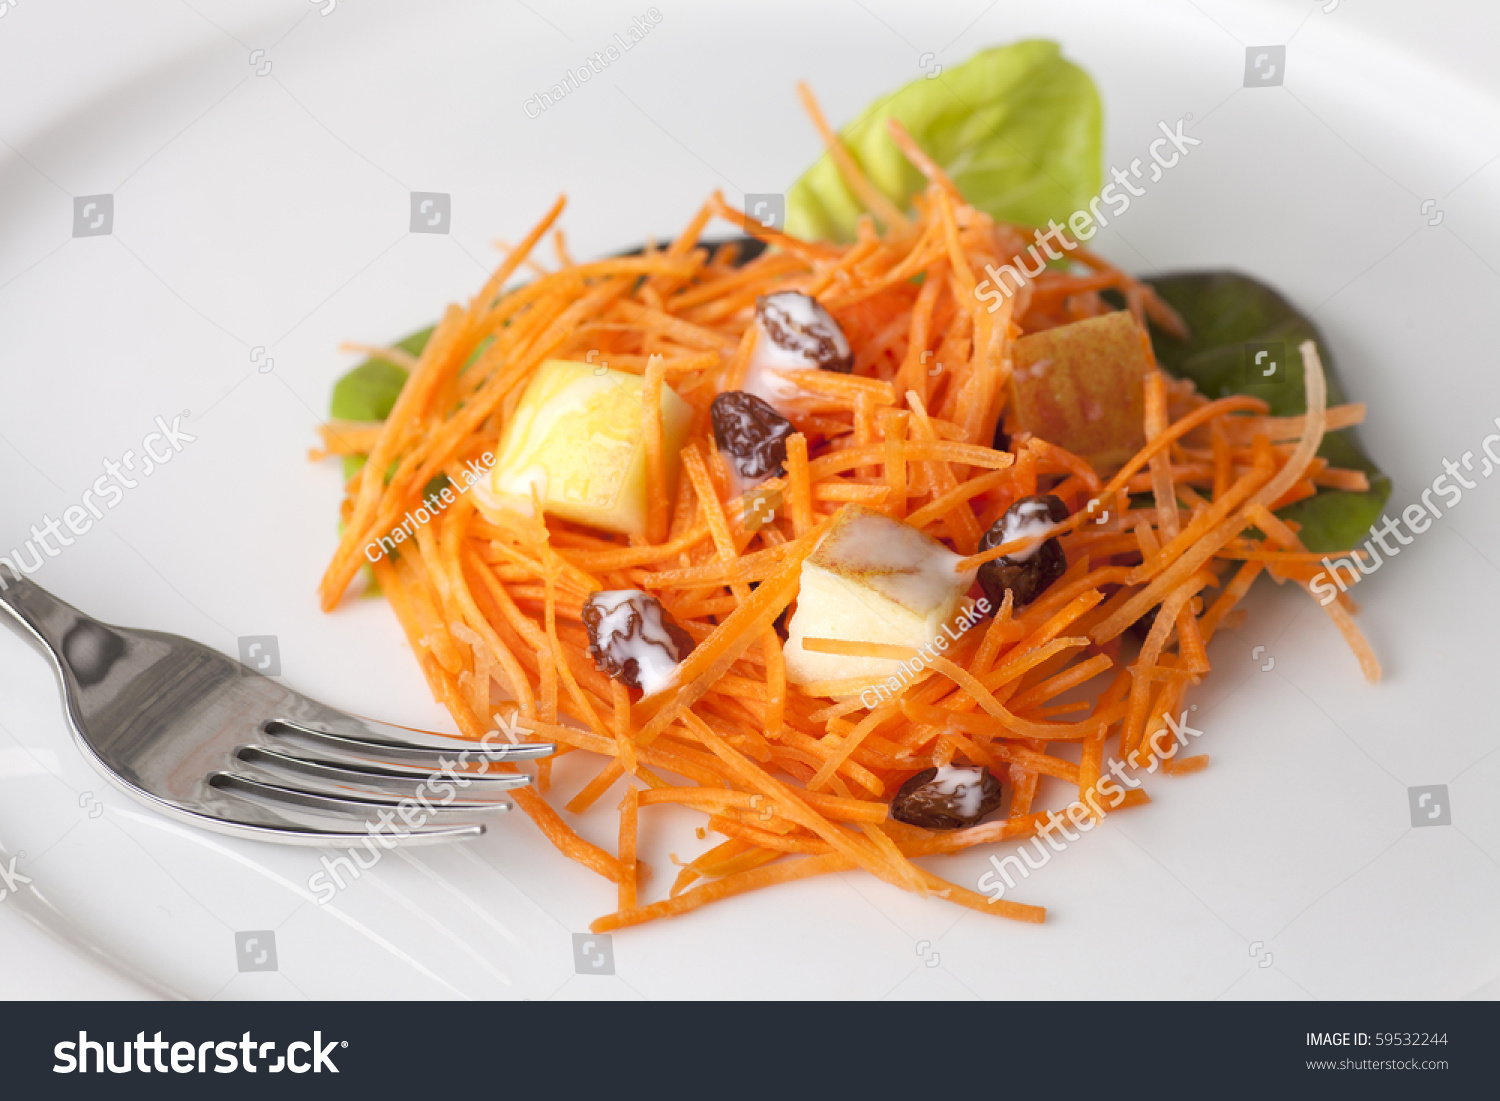 Spaghetti salad with curry